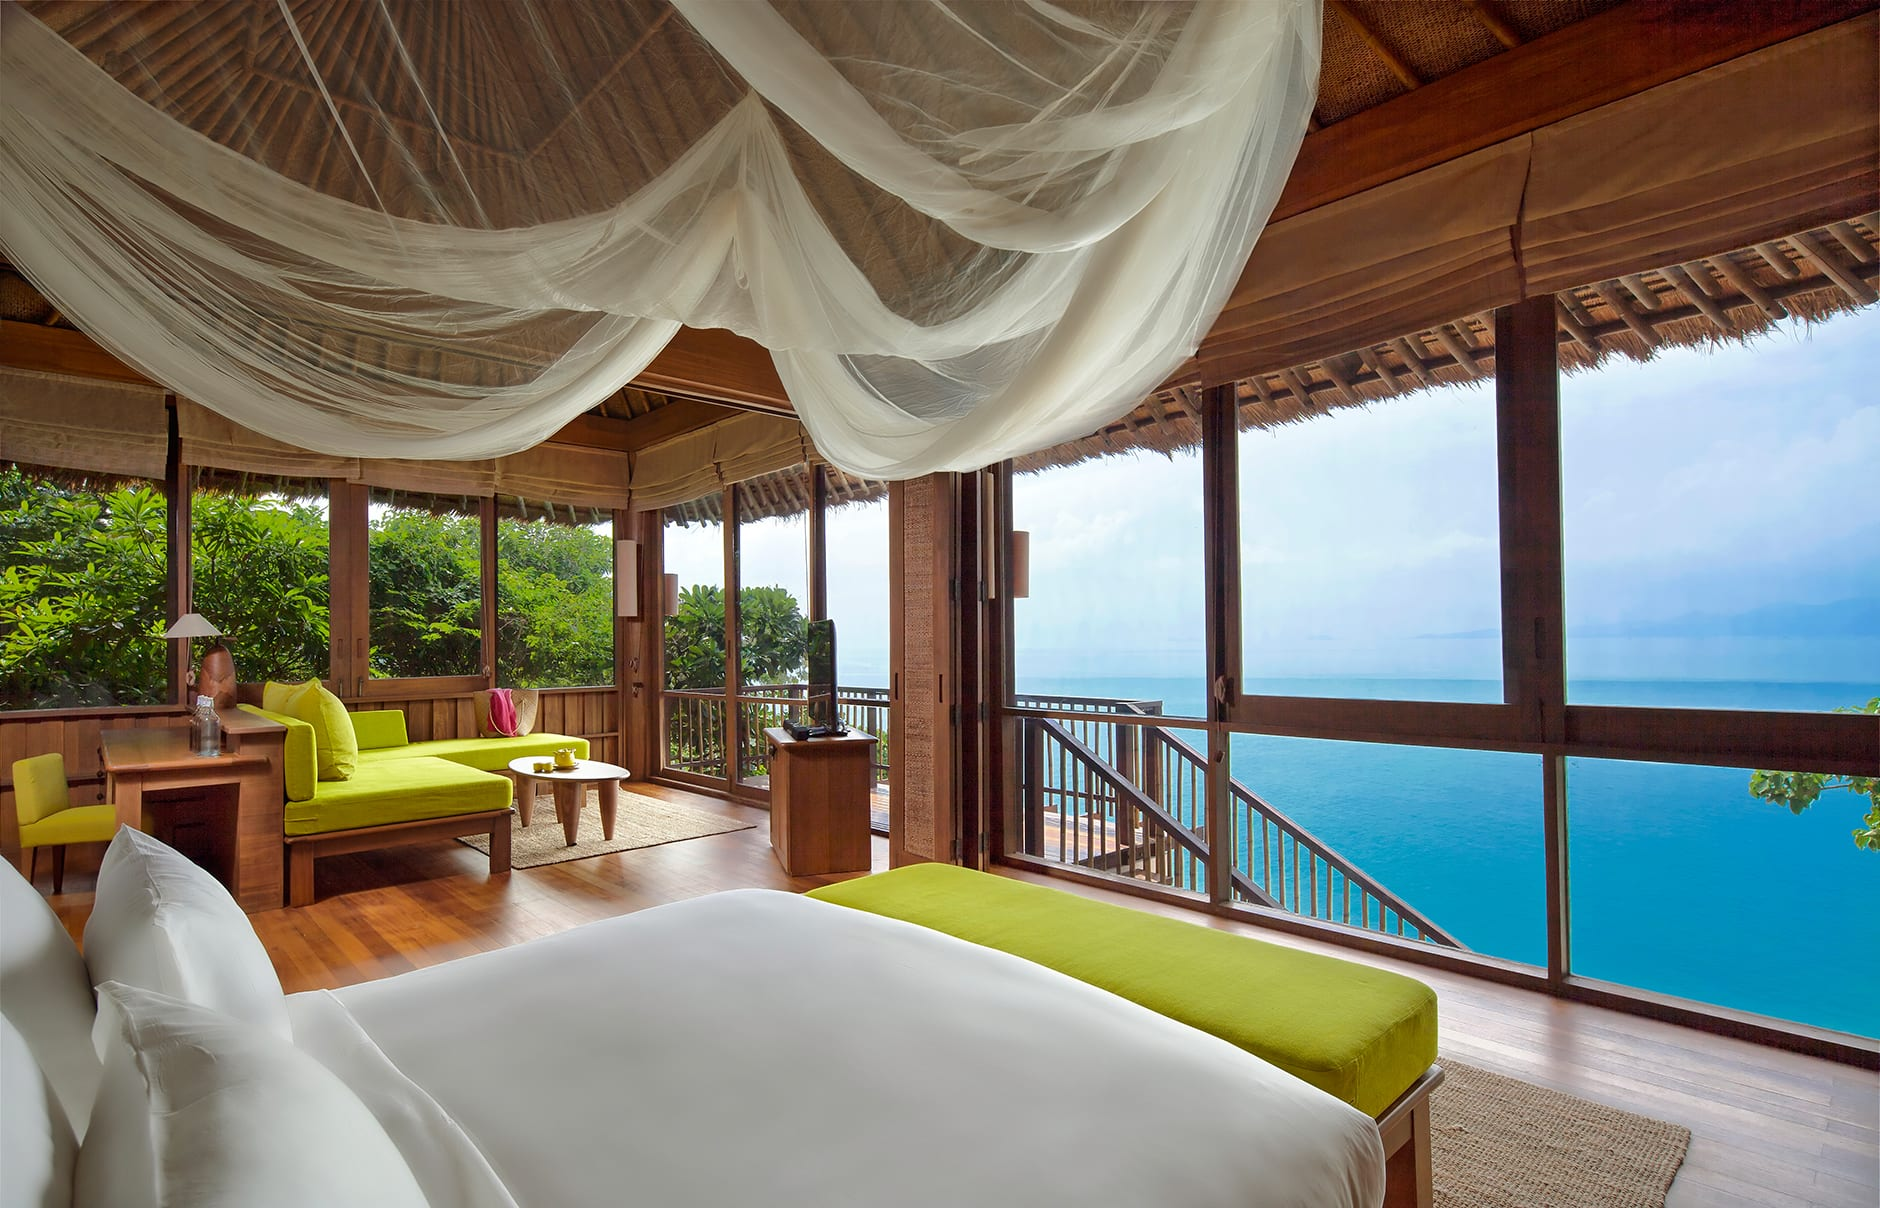 Ocean Front Pool Villa. Six Senses Samui, Thailand. © Six Senses Resorts & Spas